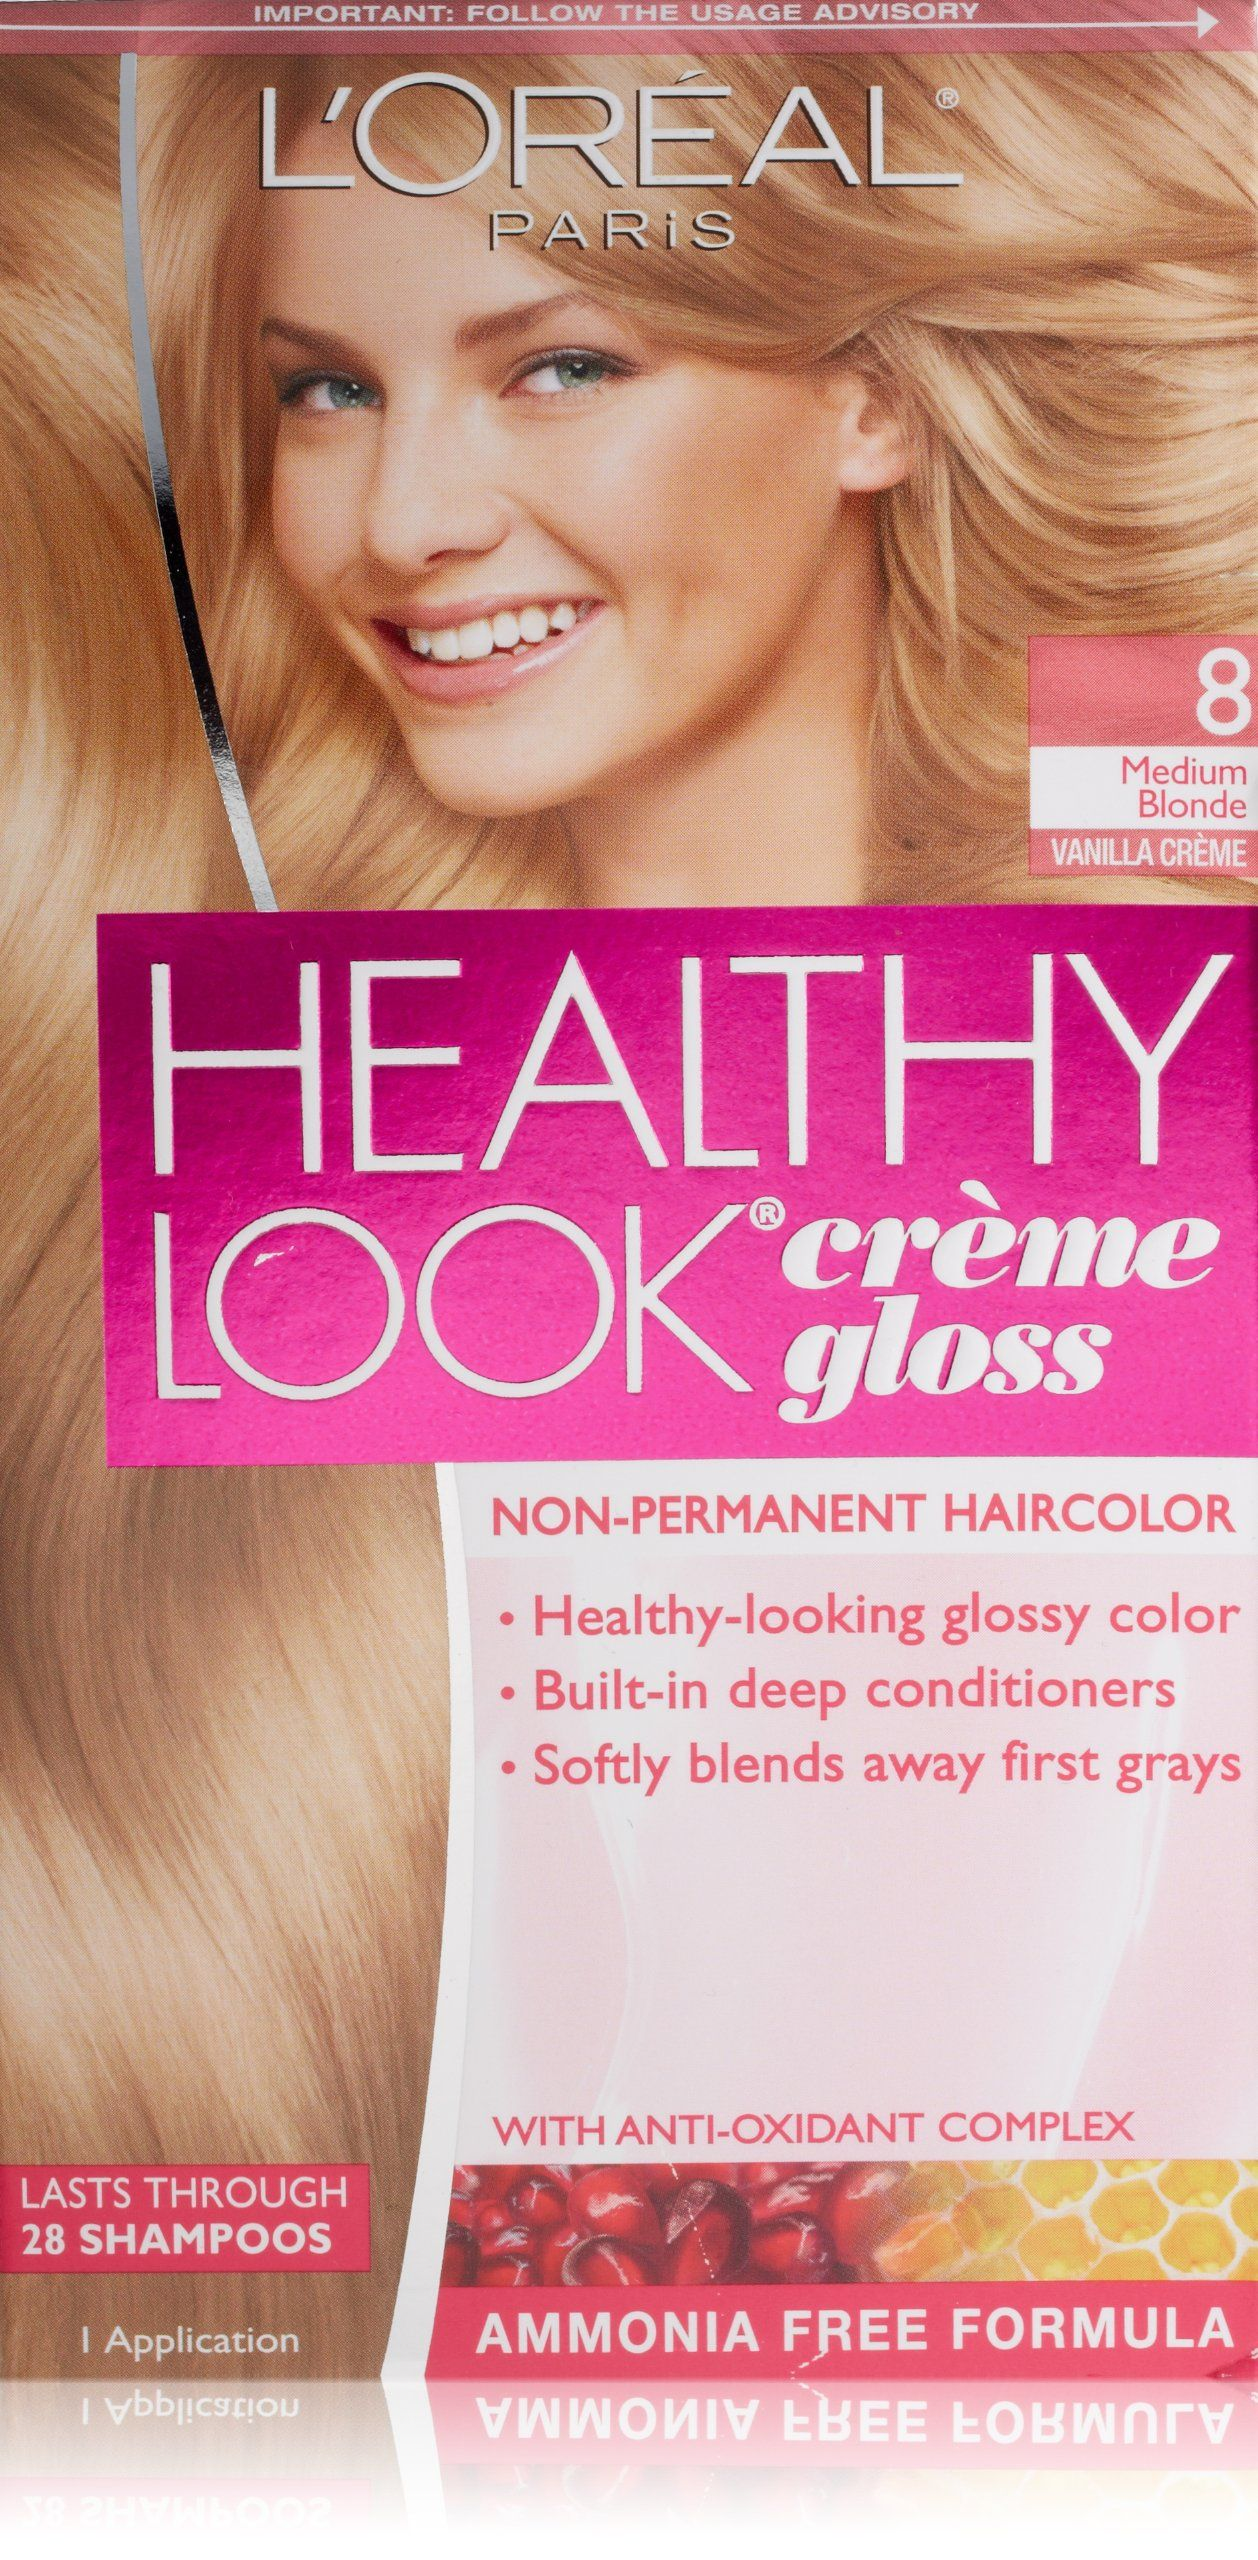 Amazon.com : L'Oreal Healthy Look Creme Gloss Hair Color, 1 Rich Black/Double Espresso : Chemical Hair Dyes : Beauty